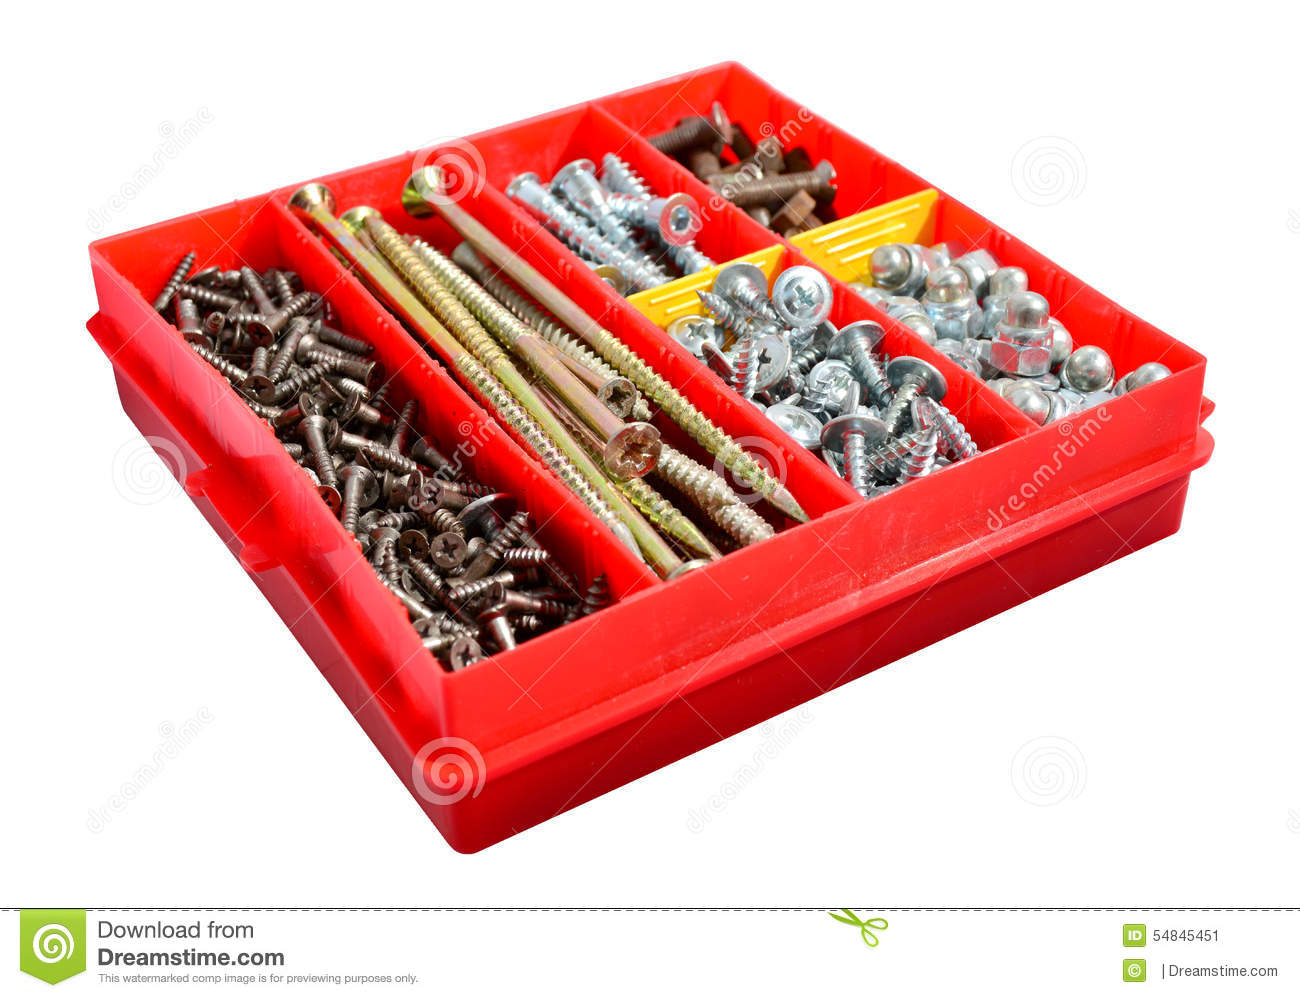 A box of screws and bolts